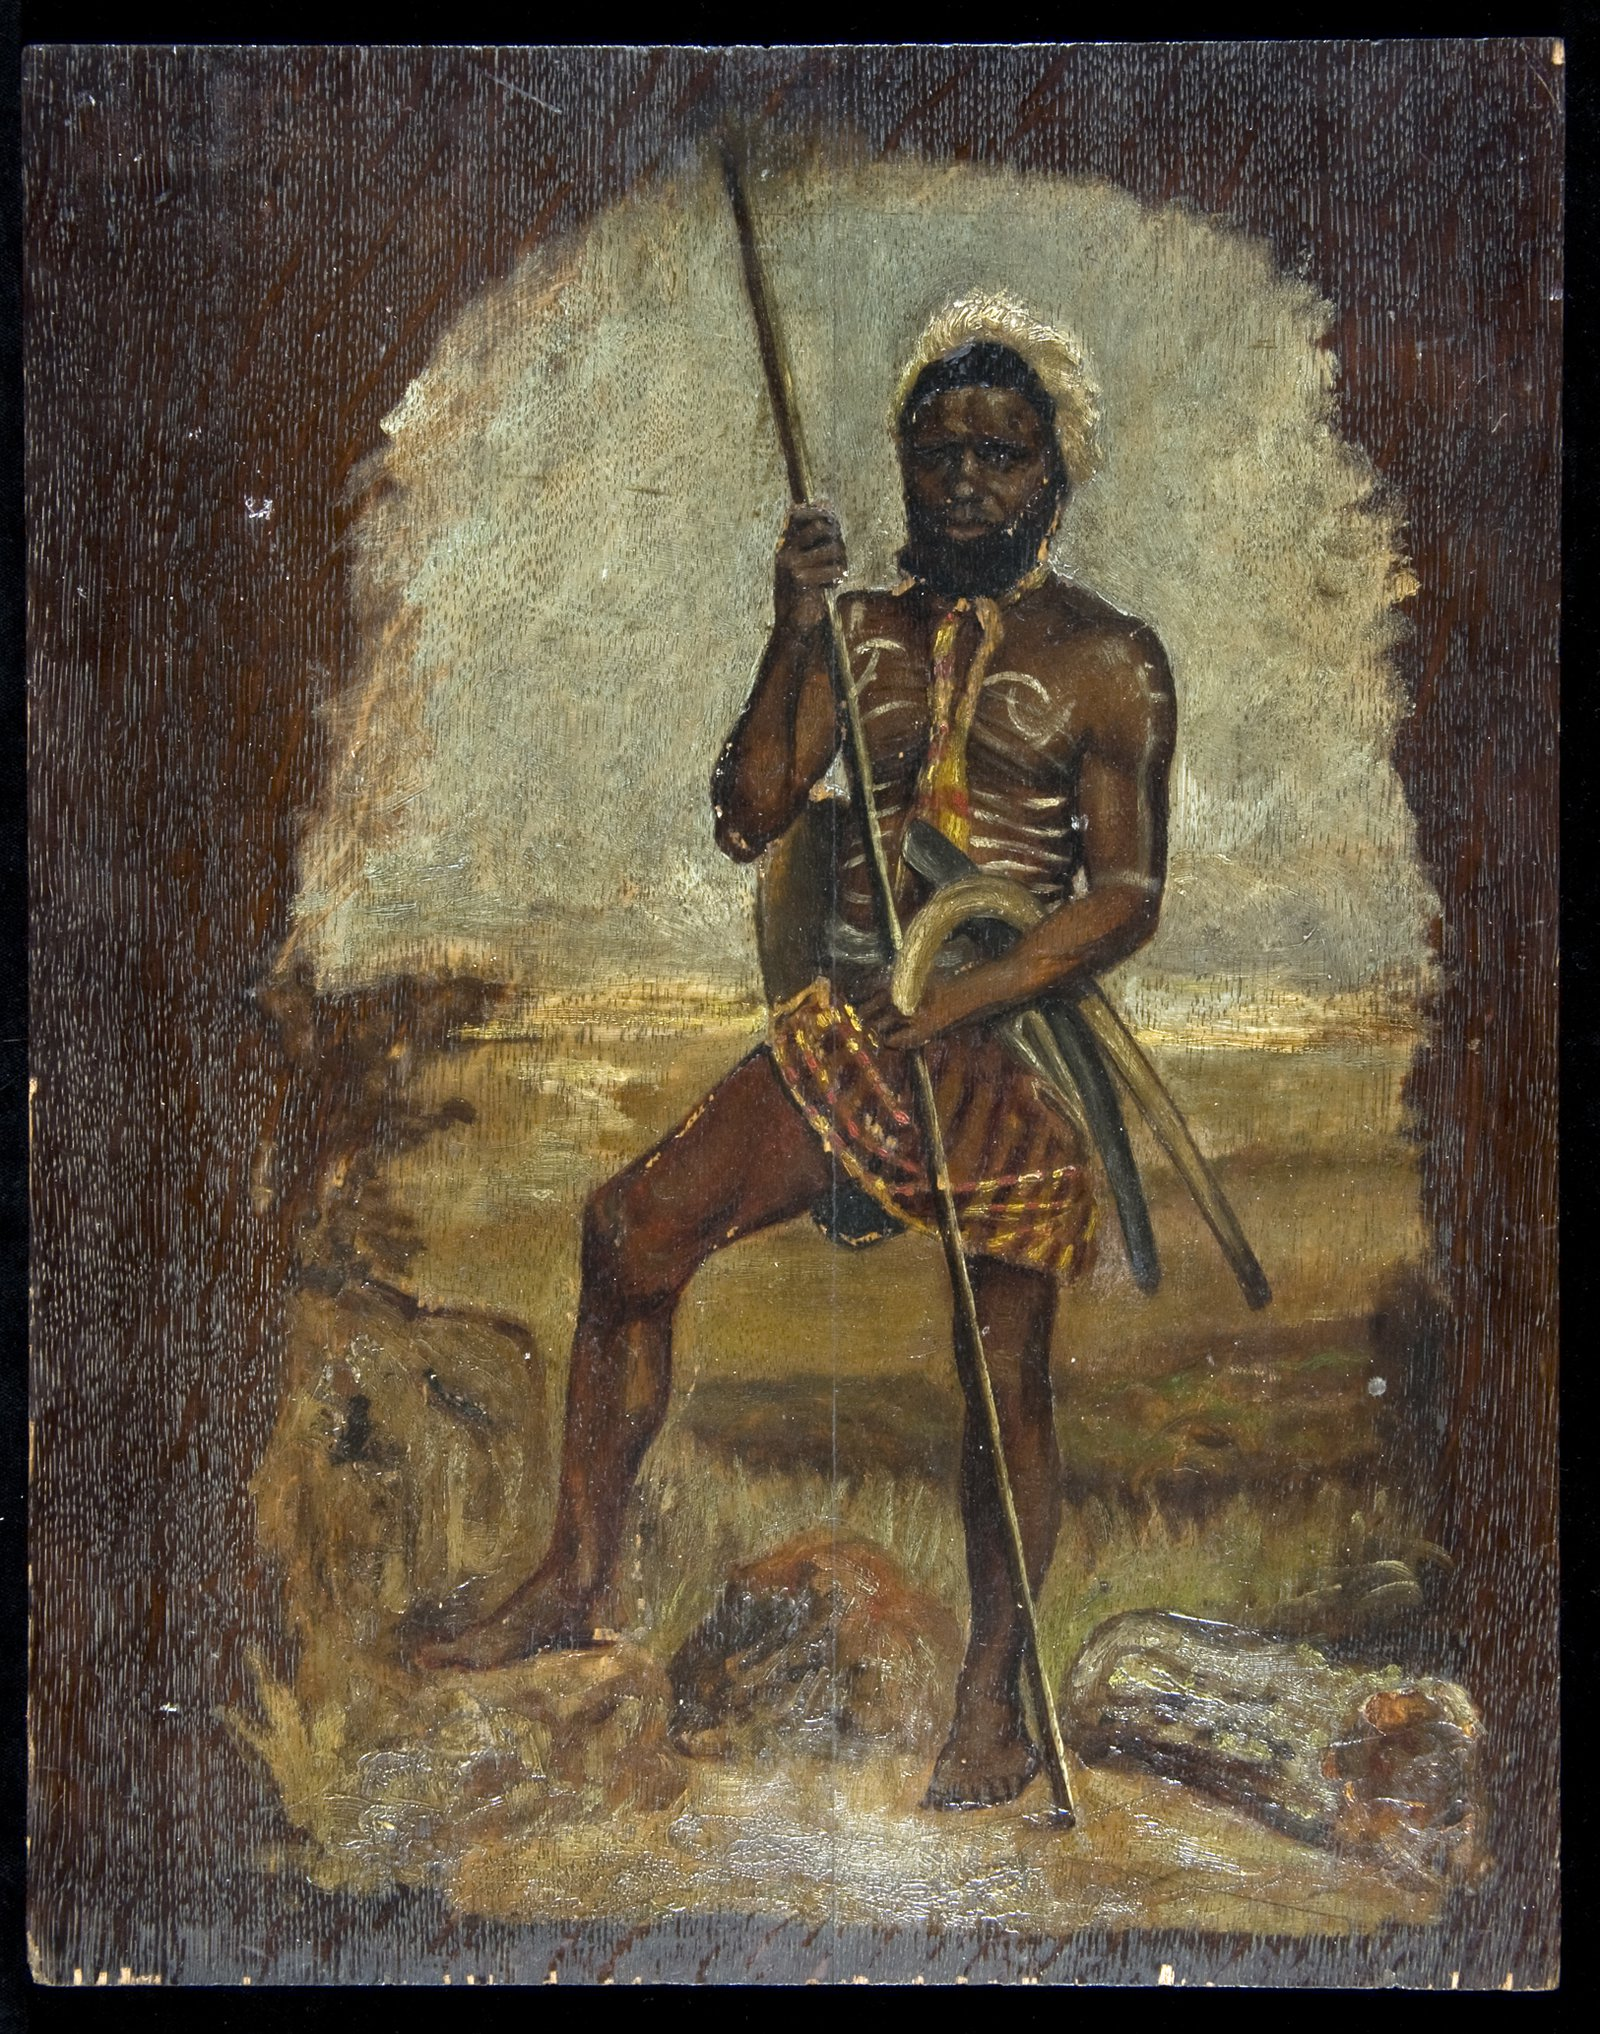 Indigenous Warrior - Painting : E67342